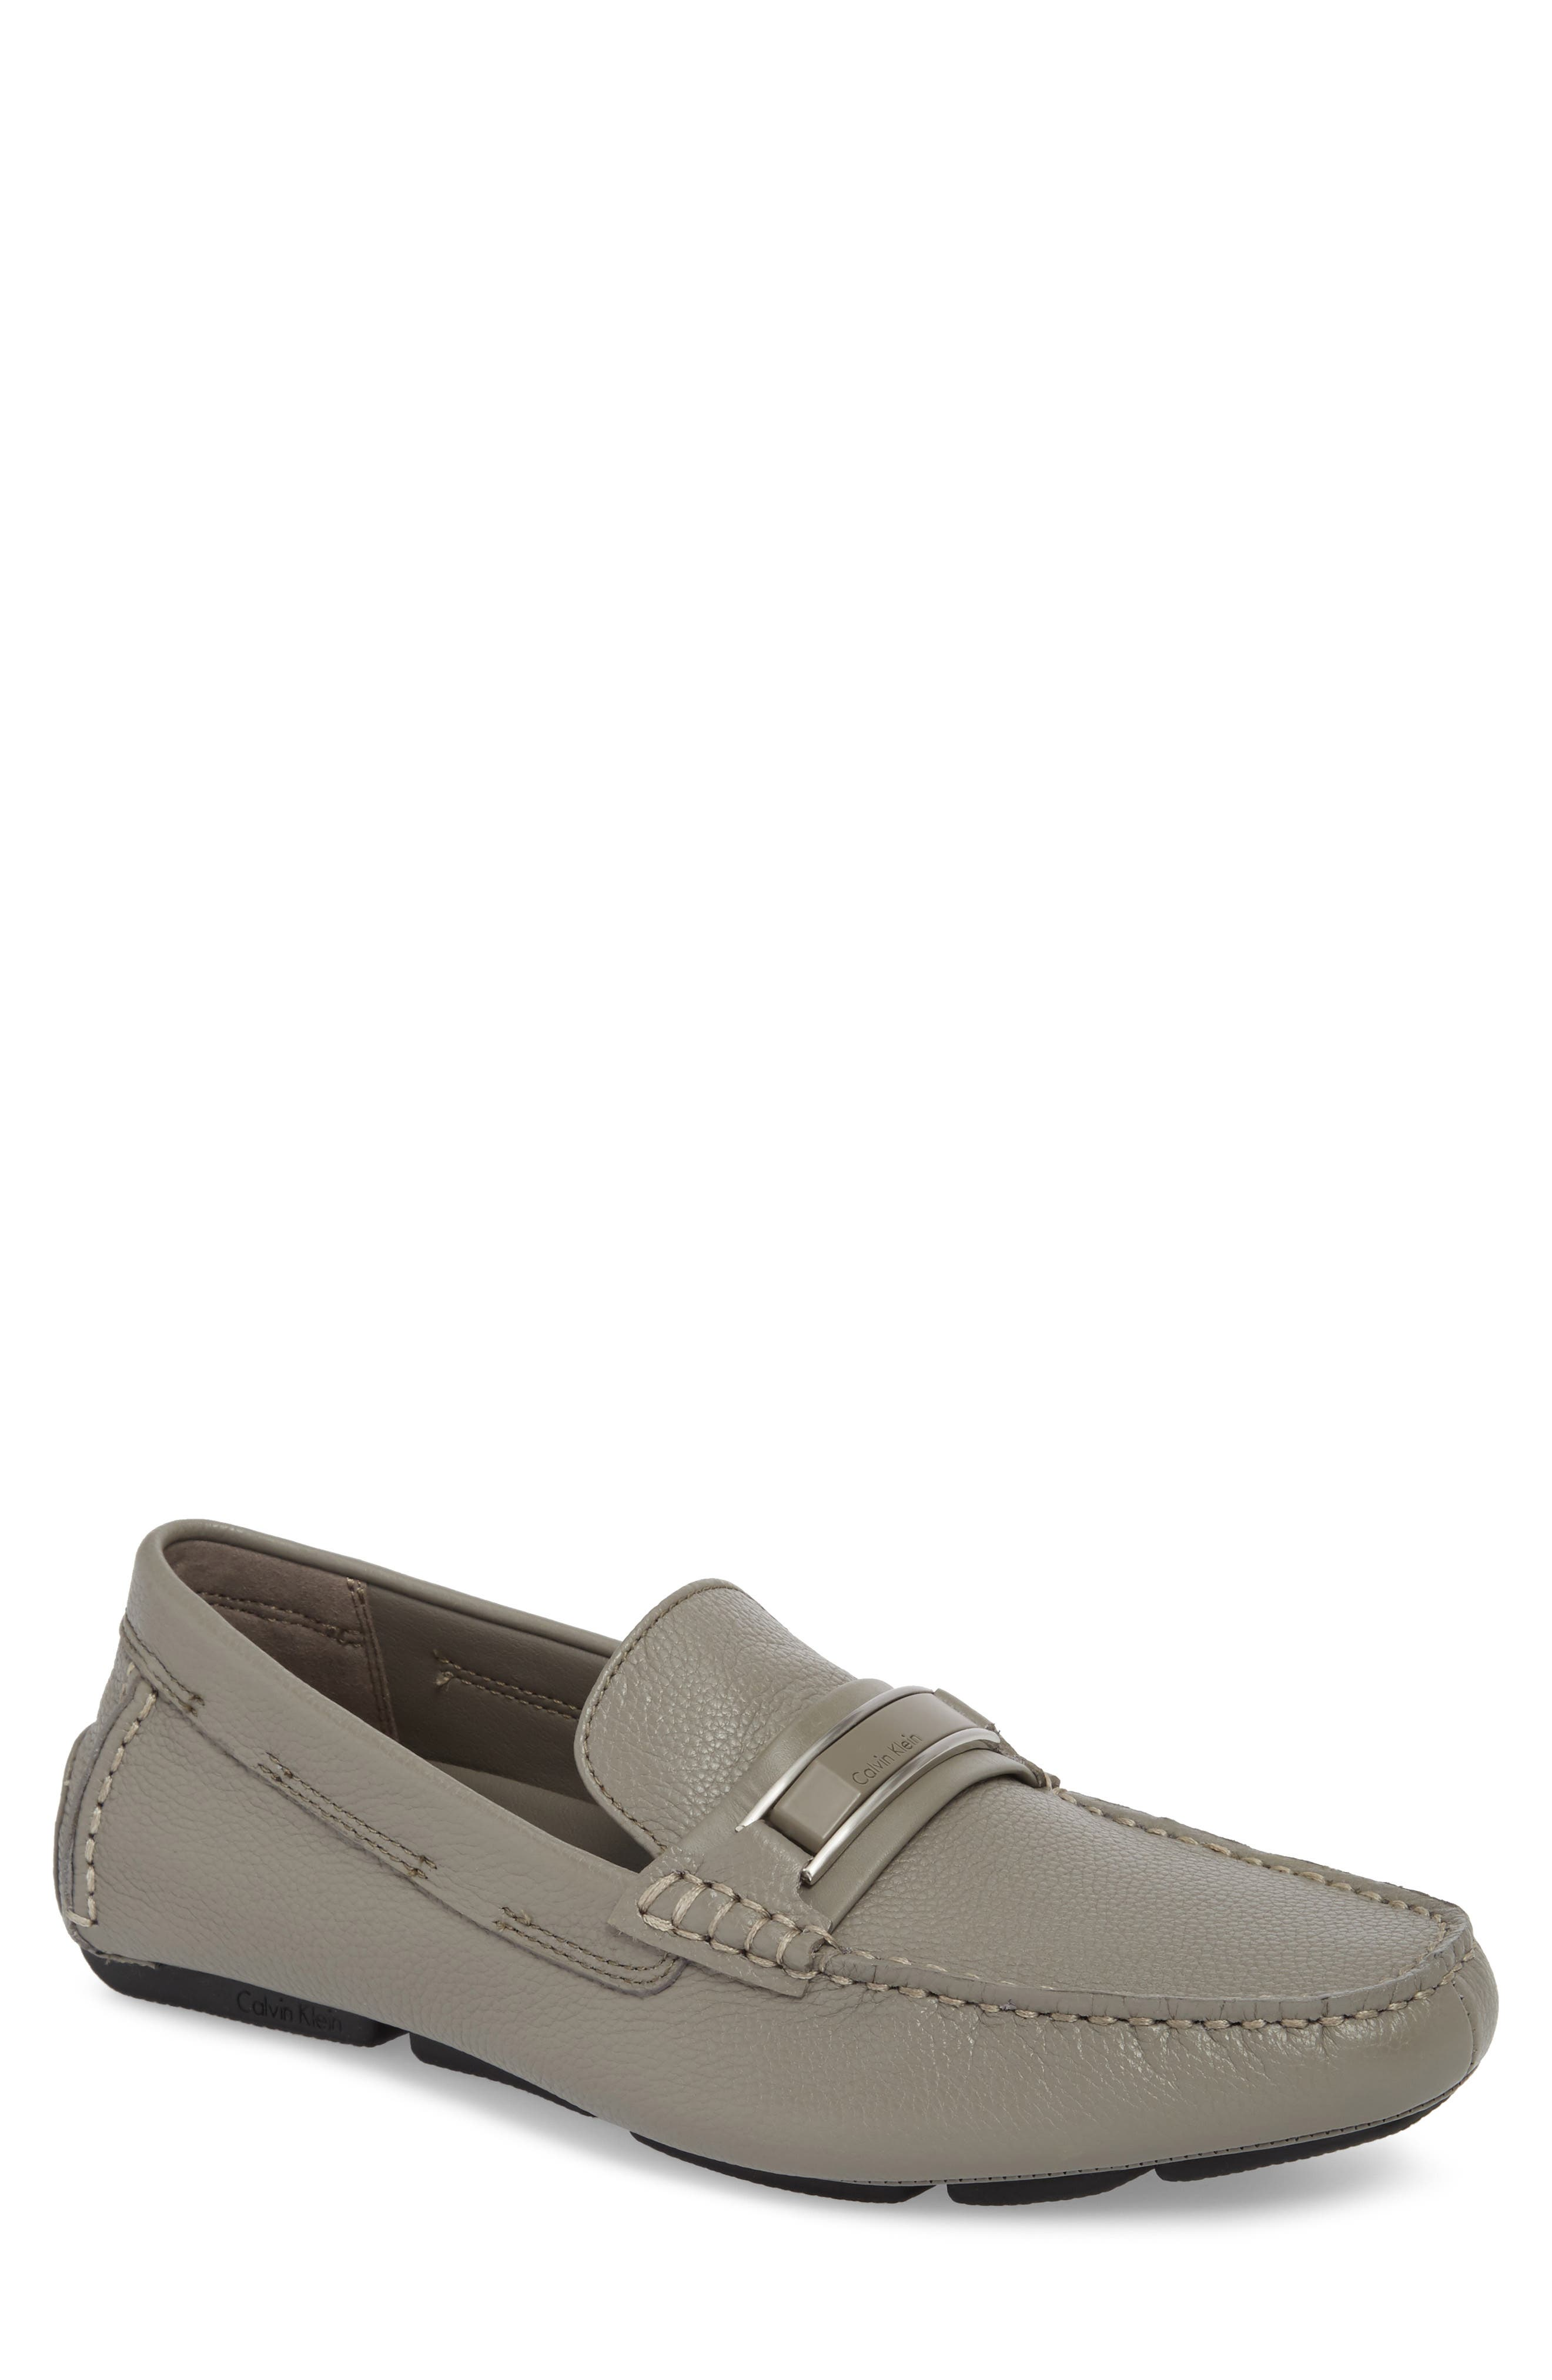 Madsen Bit Driving Moccasin,                         Main,                         color, Toffee Leather